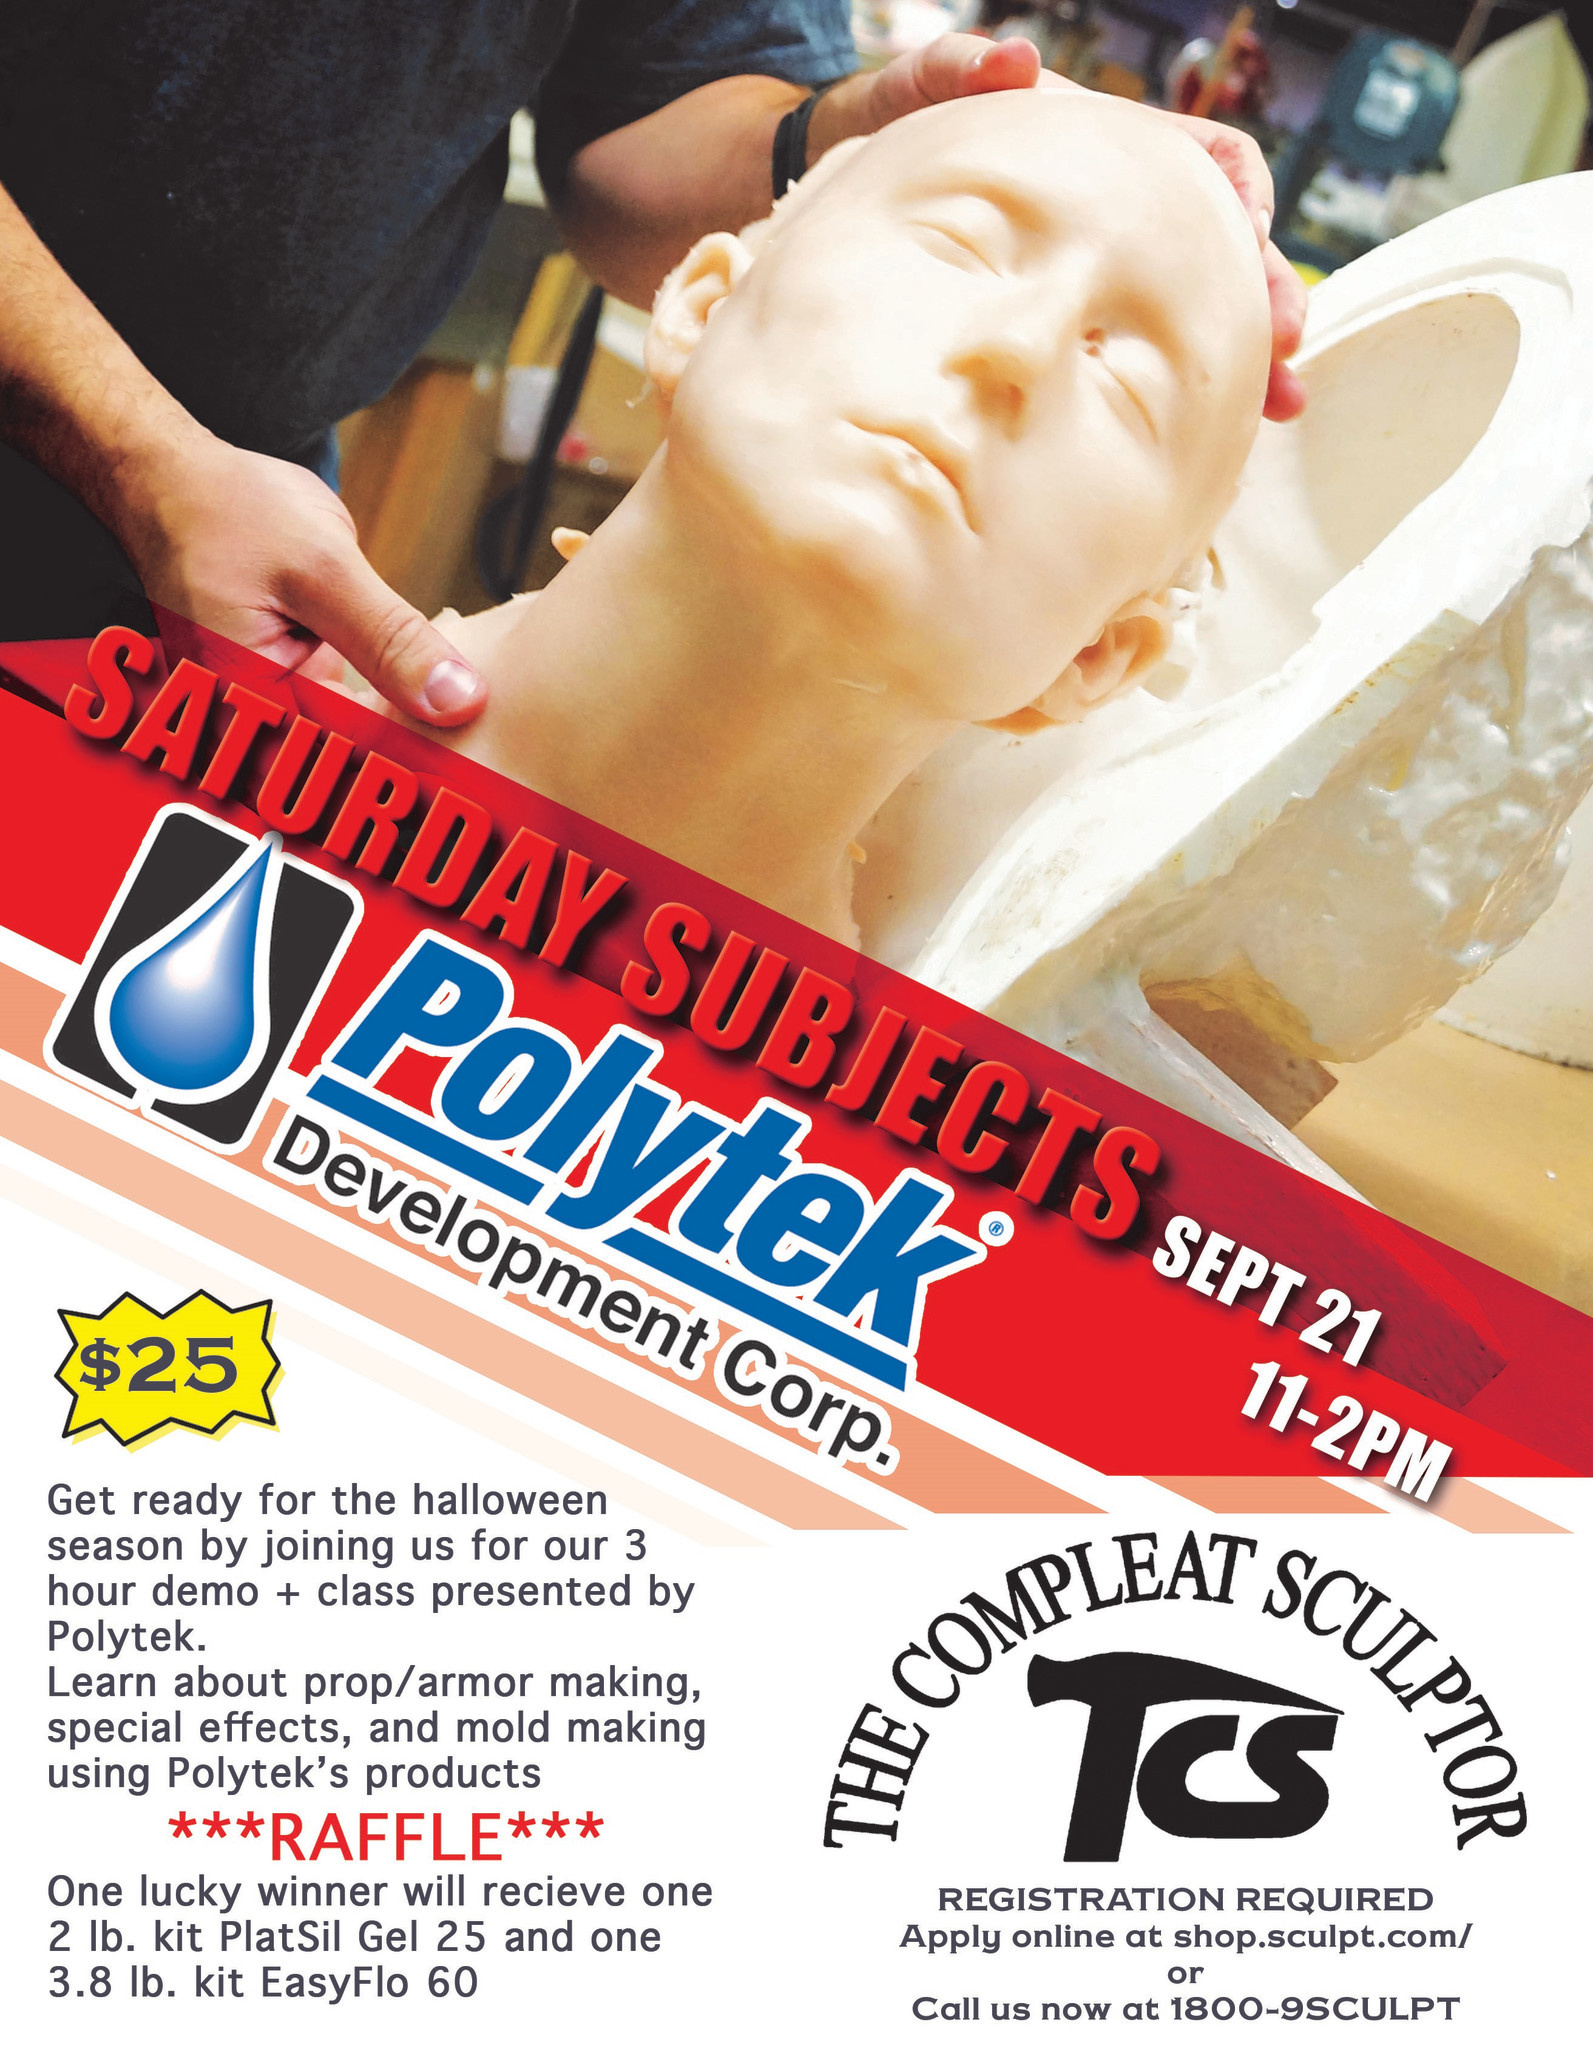 TCS Classes 190921 Saturday Subject Polytek September 21 11-2pm